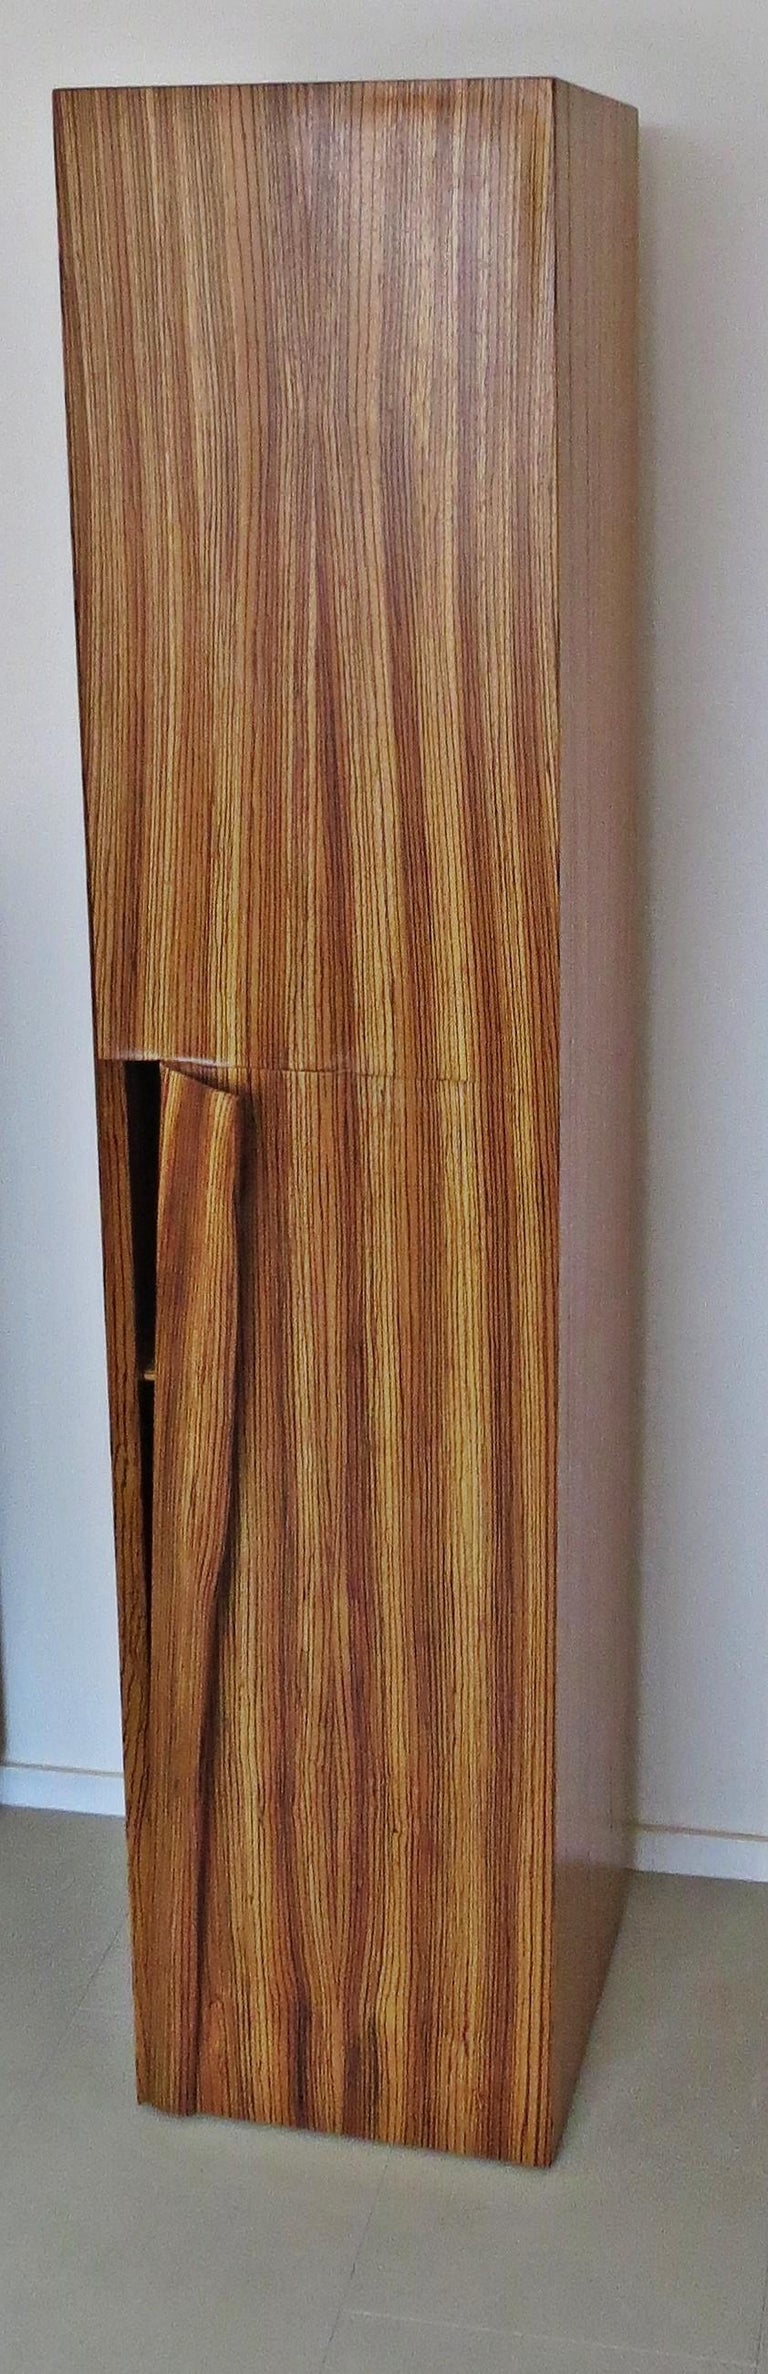 Tower Cabinet, Handmade, Solid Zebra Wood, Made in Germany, High Cabinet For Sale 4